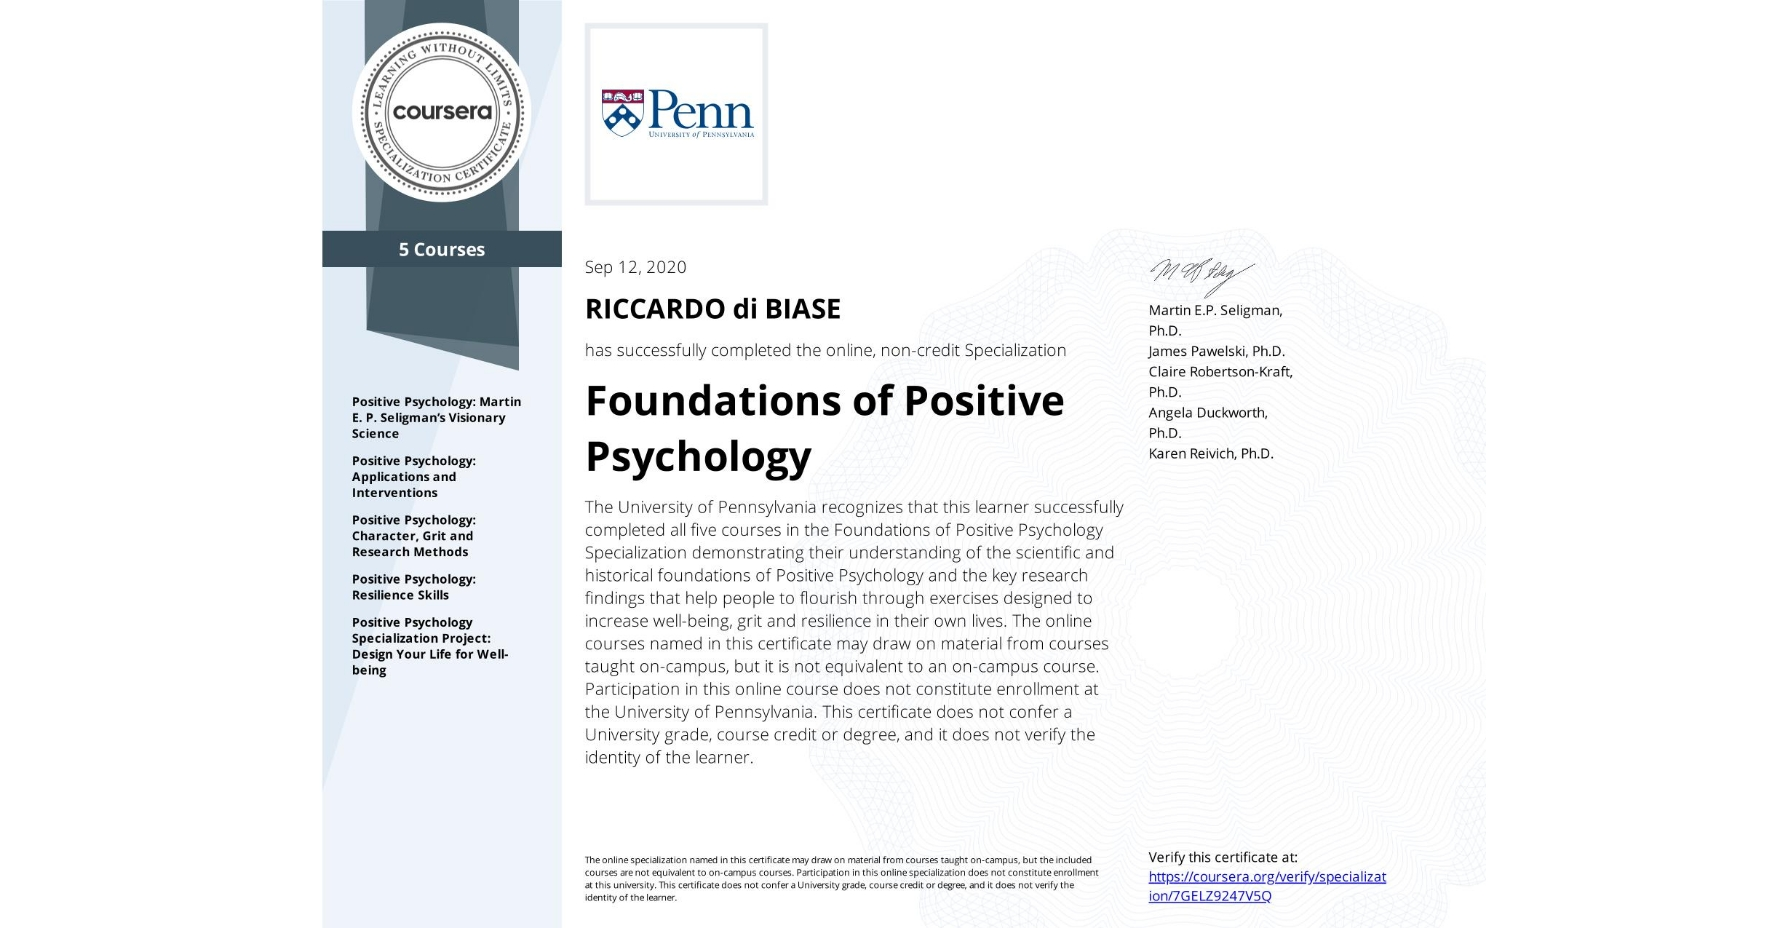 View certificate for Riccardo di Biase, Foundations of Positive Psychology , offered through Coursera. The University of Pennsylvania recognizes that this learner successfully completed all five courses in the Foundations of Positive Psychology Specialization demonstrating their understanding of the scientific and historical foundations of Positive Psychology and the key research findings that help people to flourish through exercises designed to increase well-being, grit and resilience in their own lives. The online courses named in this certificate may draw on material from courses taught on-campus, but it is not equivalent to an on-campus course.  Participation in this online course does not constitute enrollment at the University of Pennsylvania. This certificate does not confer a University grade, course credit or degree, and it does not verify the identity of the learner.